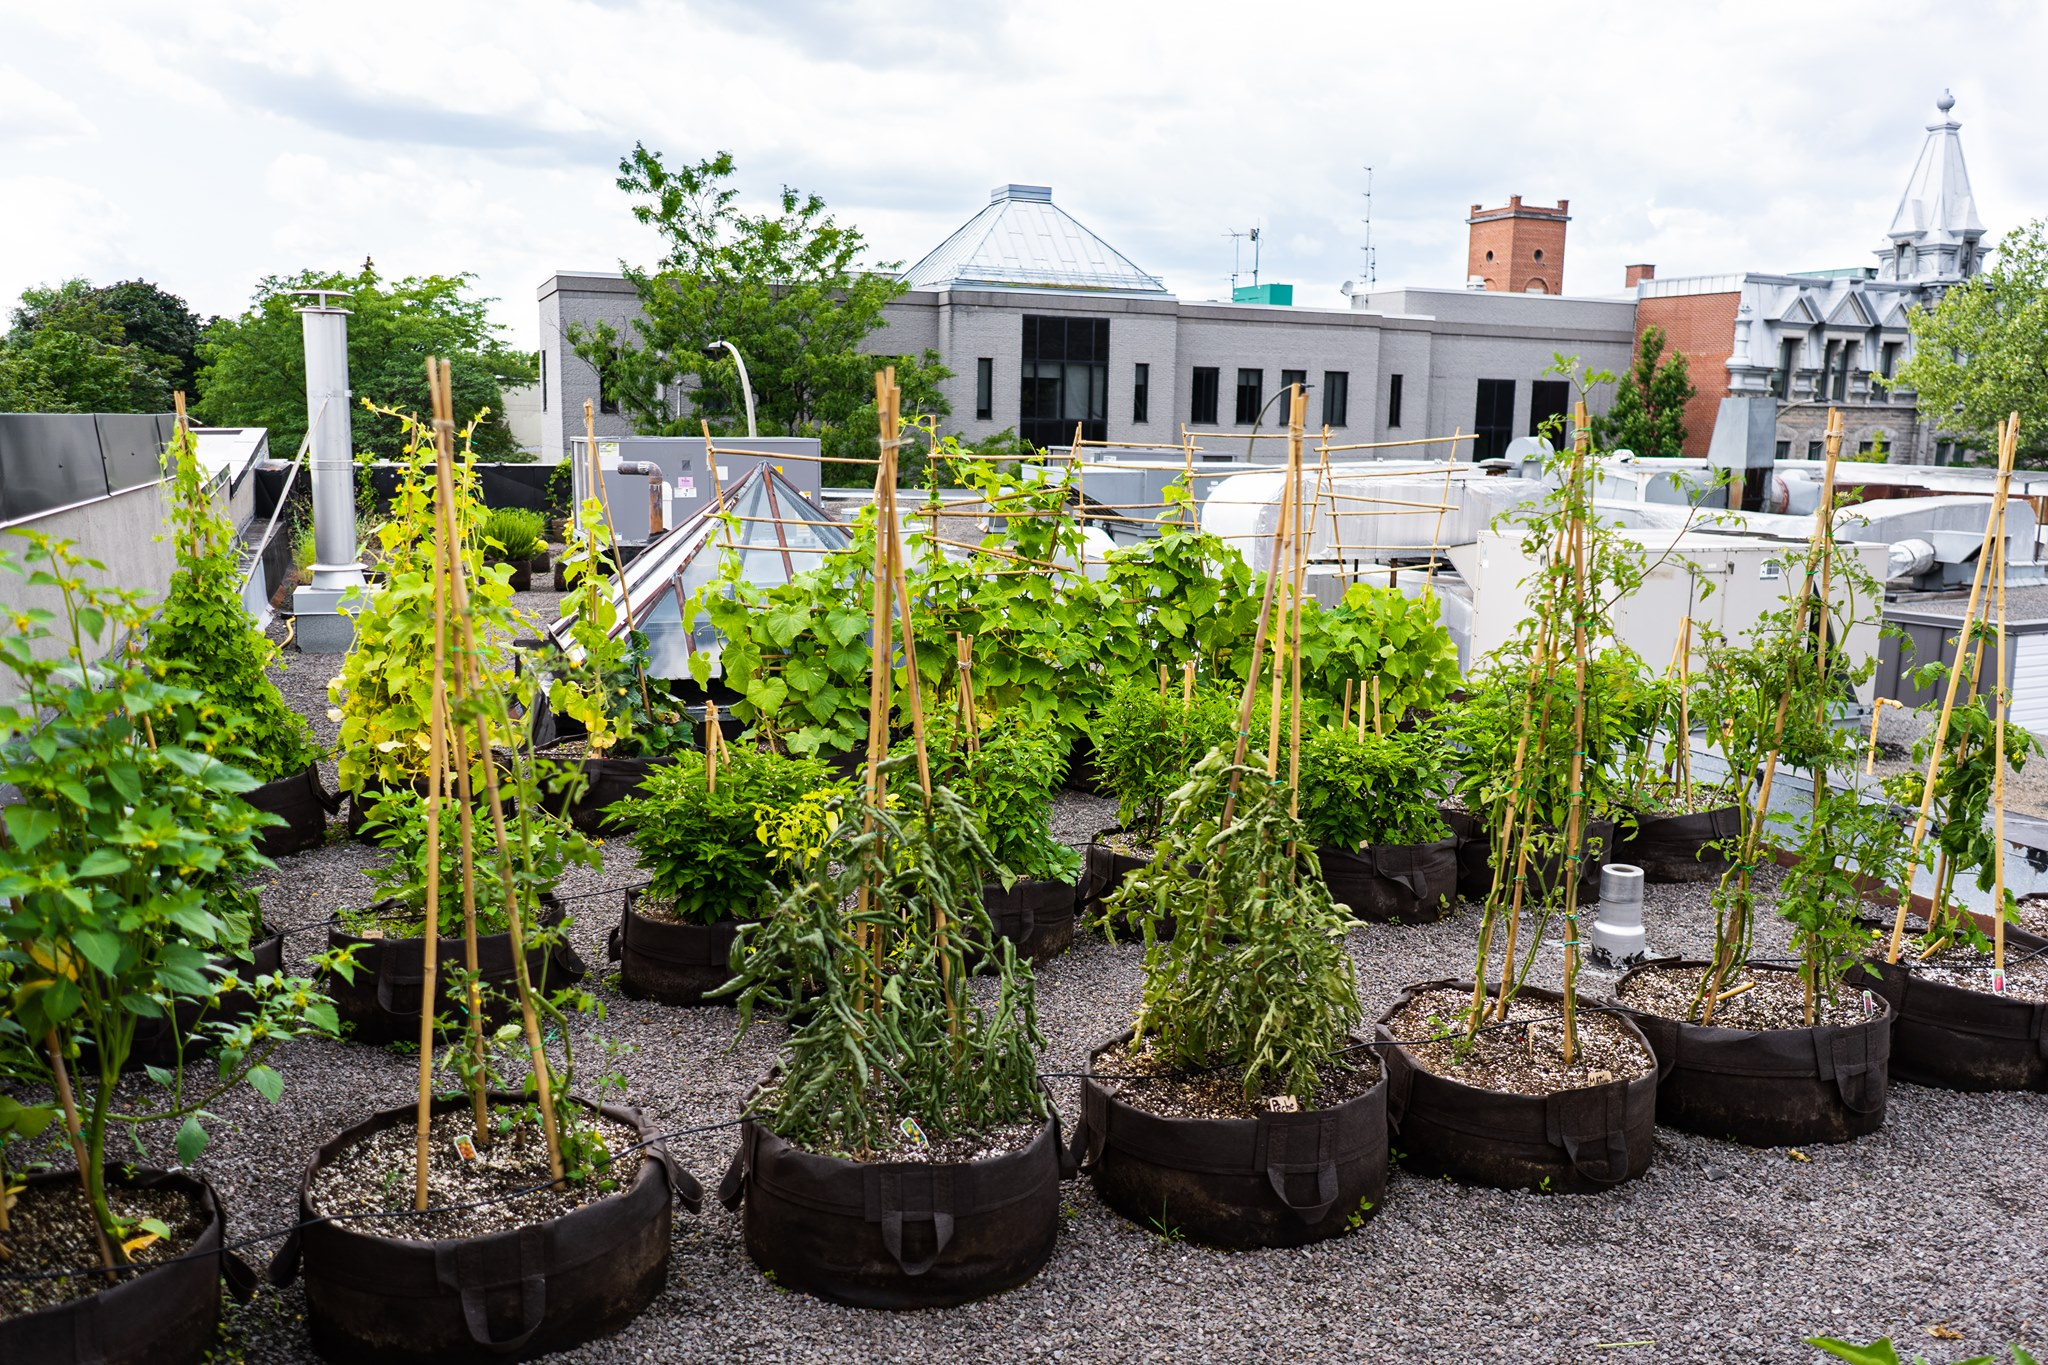 Montreal rooftop garden at Projet Pilote